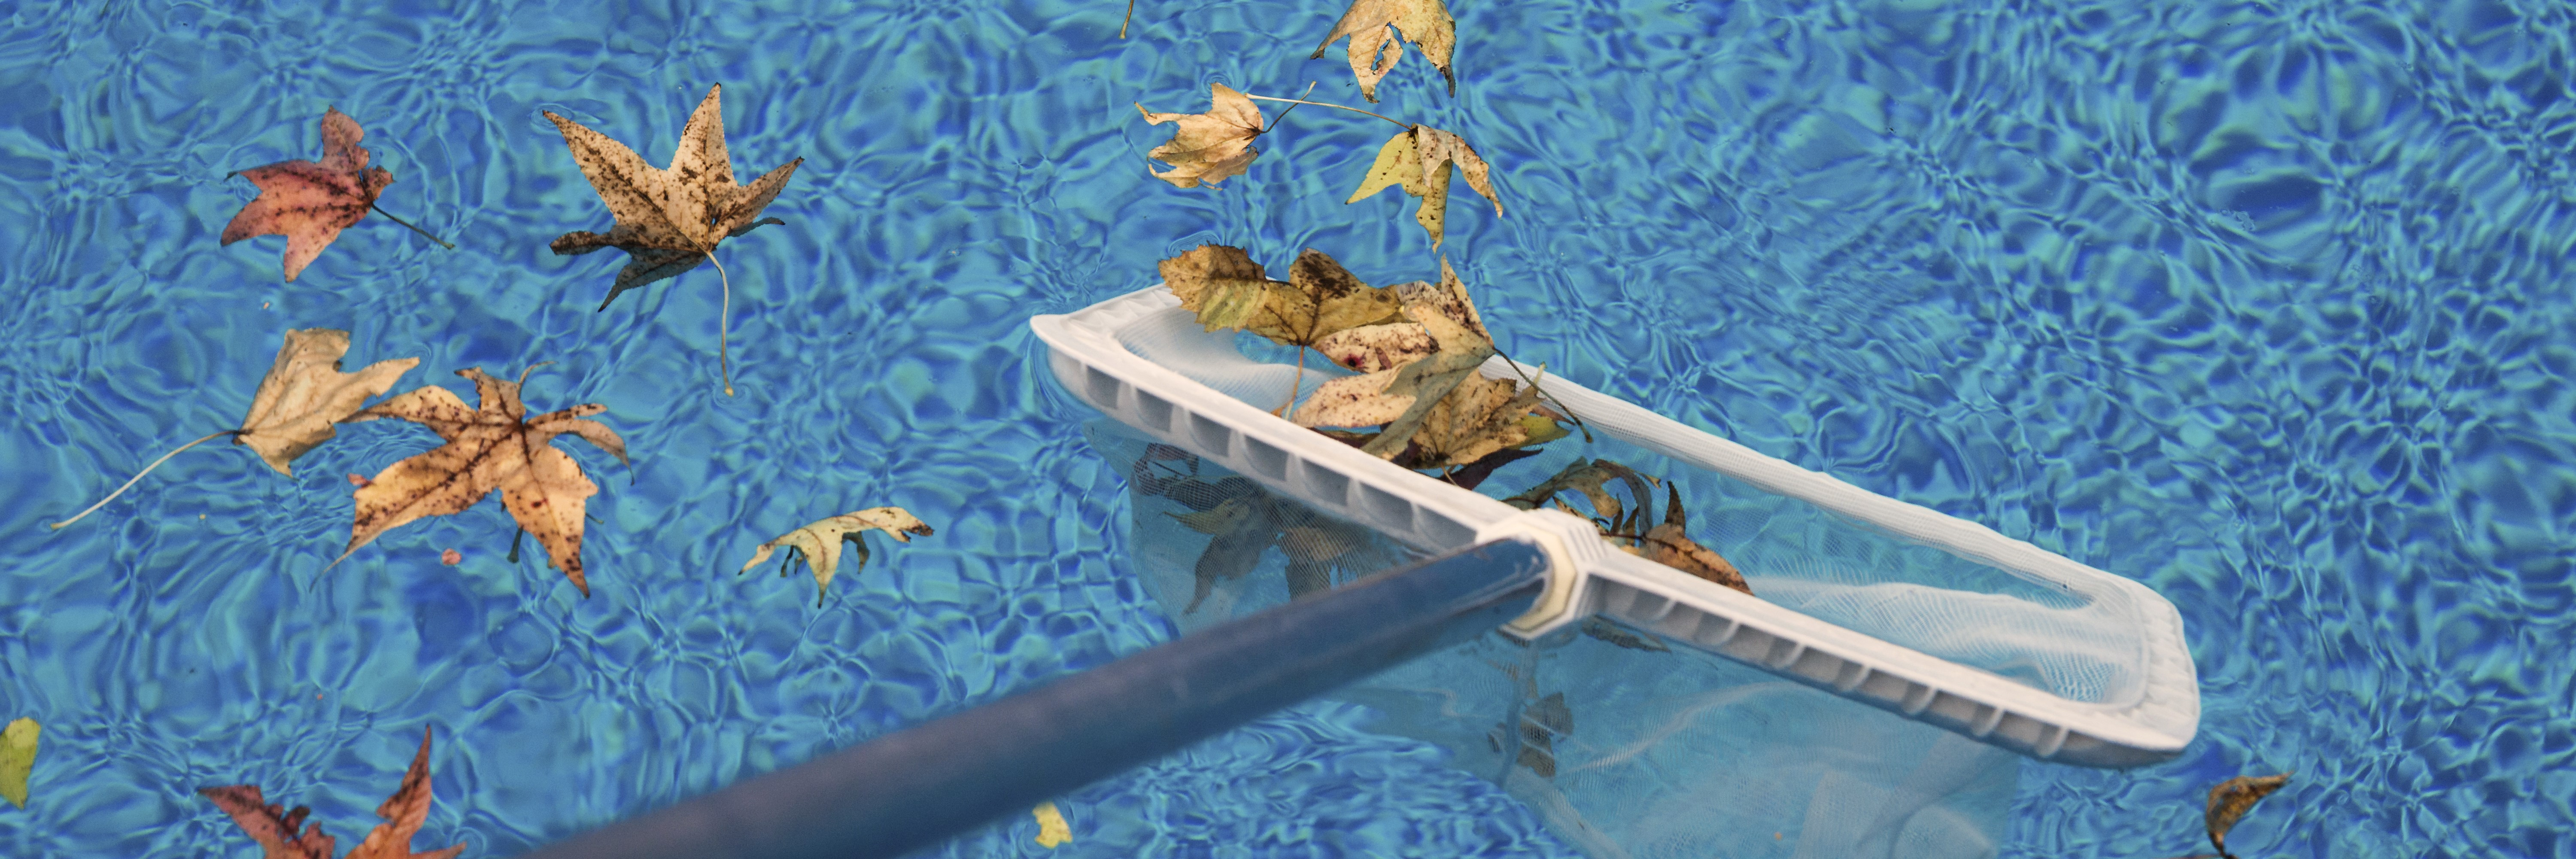 skimming leaves on a pool